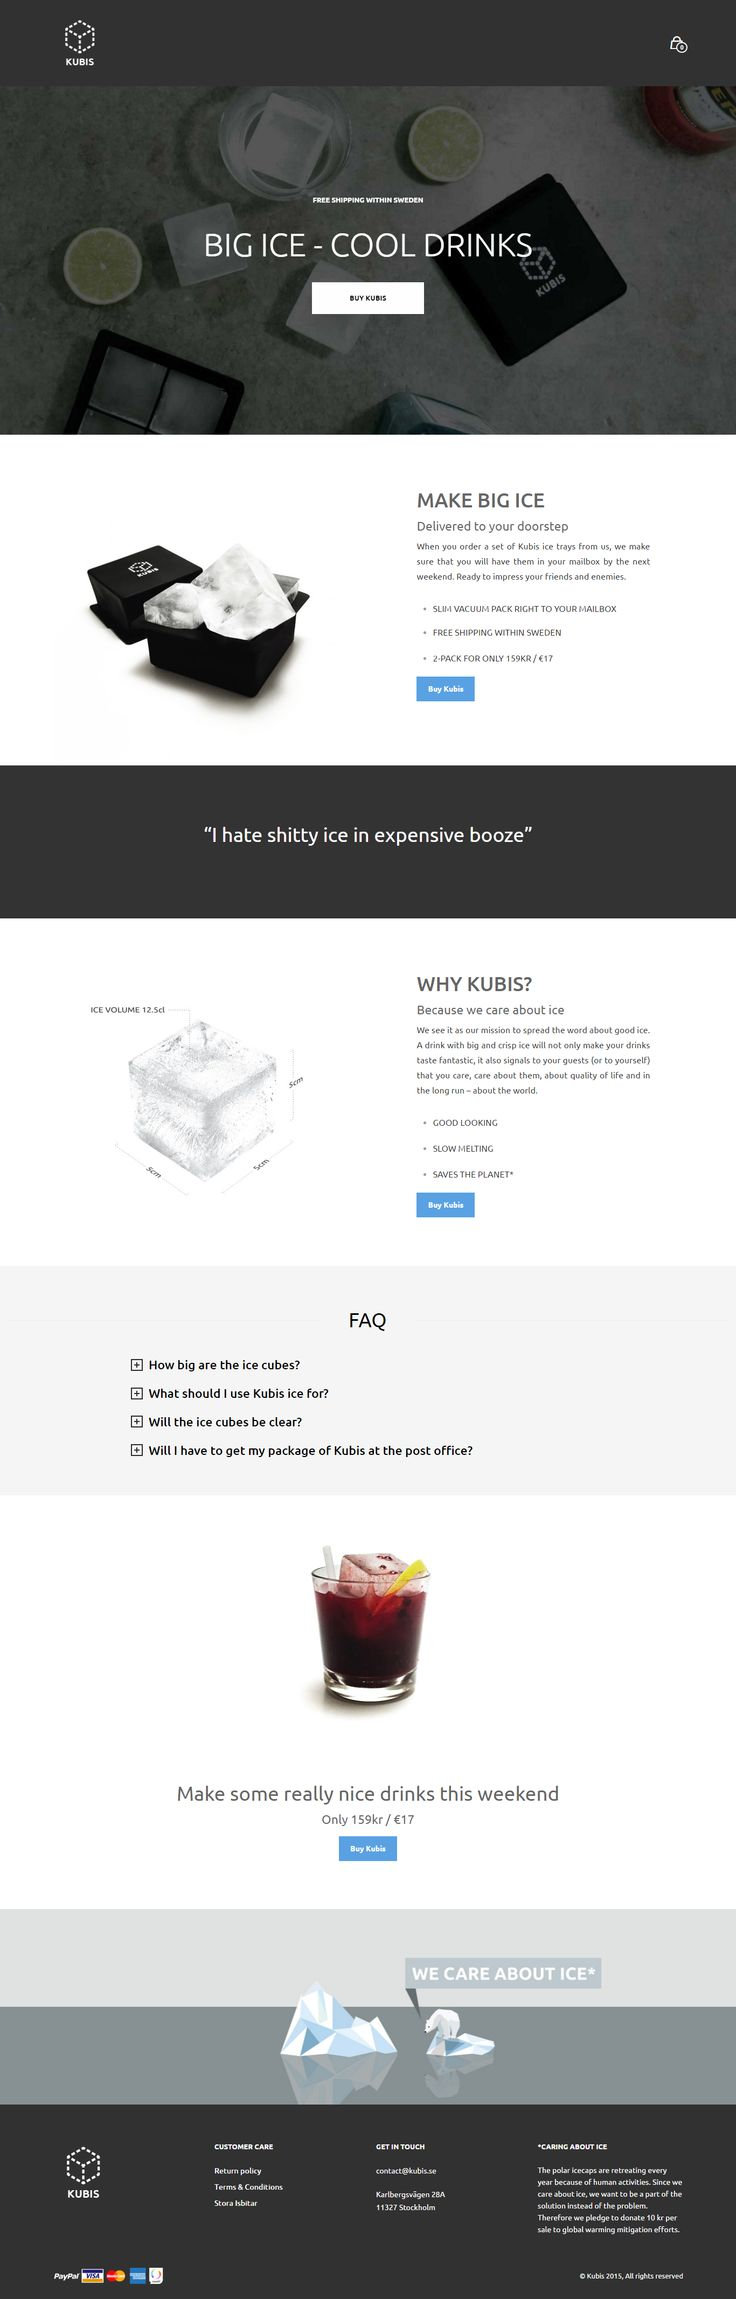 kubis.se, an online business that sells big ice, powered by Mr Tailor. http://www.getbowtied.com/customer-stories-kubis-big-ice-tray-mrtailor/?utm_source=pinterest.com&utm_medium=social&utm_content=kubis&utm_campaign=customer-stories #wordpress #bestsites #webdesign #bigice #icetray #cooldrinks